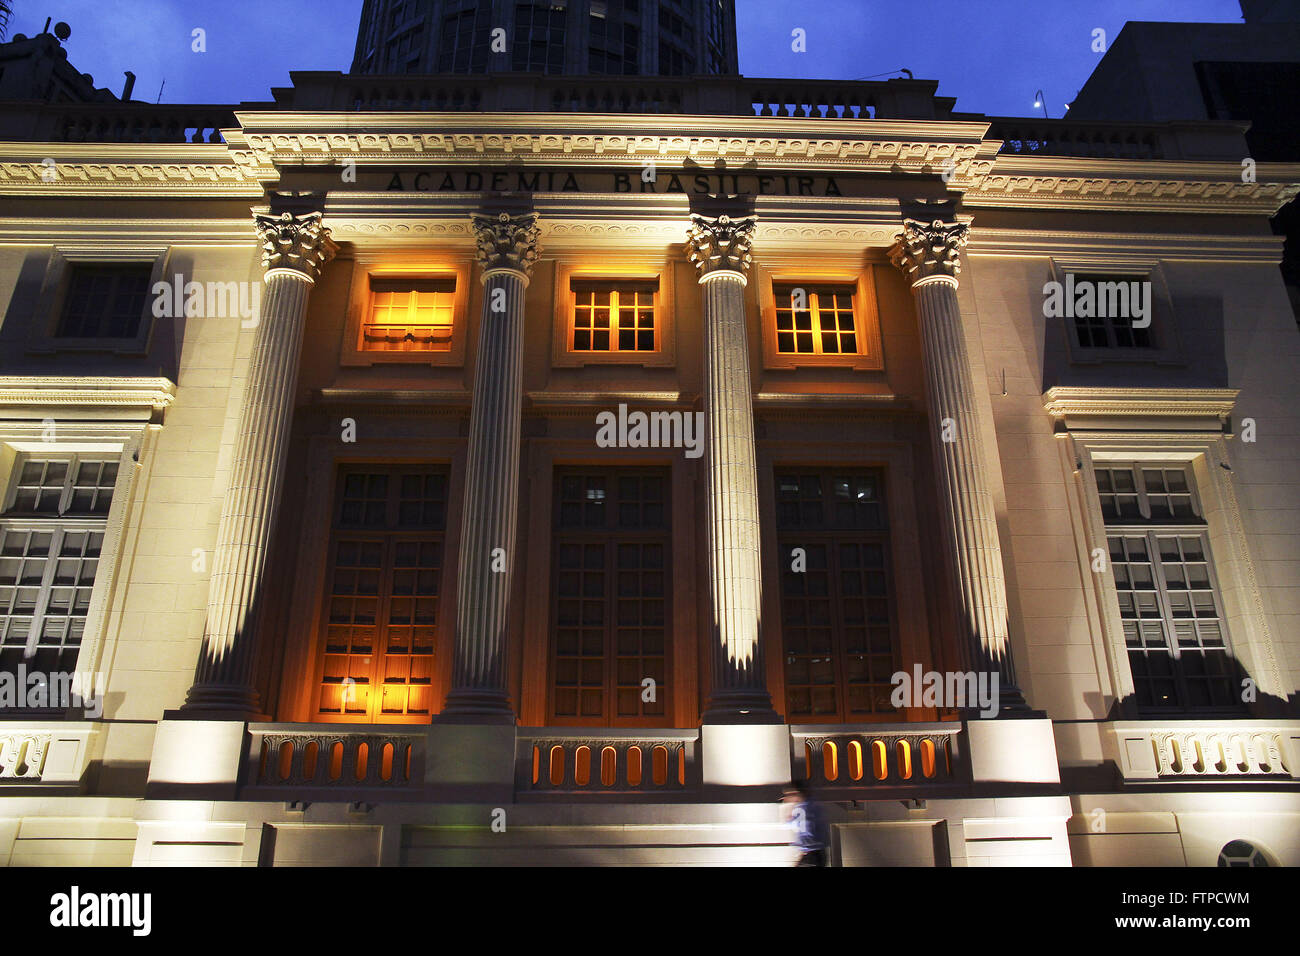 Facade of the headquarters of the Brazilian Academy of Letters - ABL - opened in 1897 - Stock Image